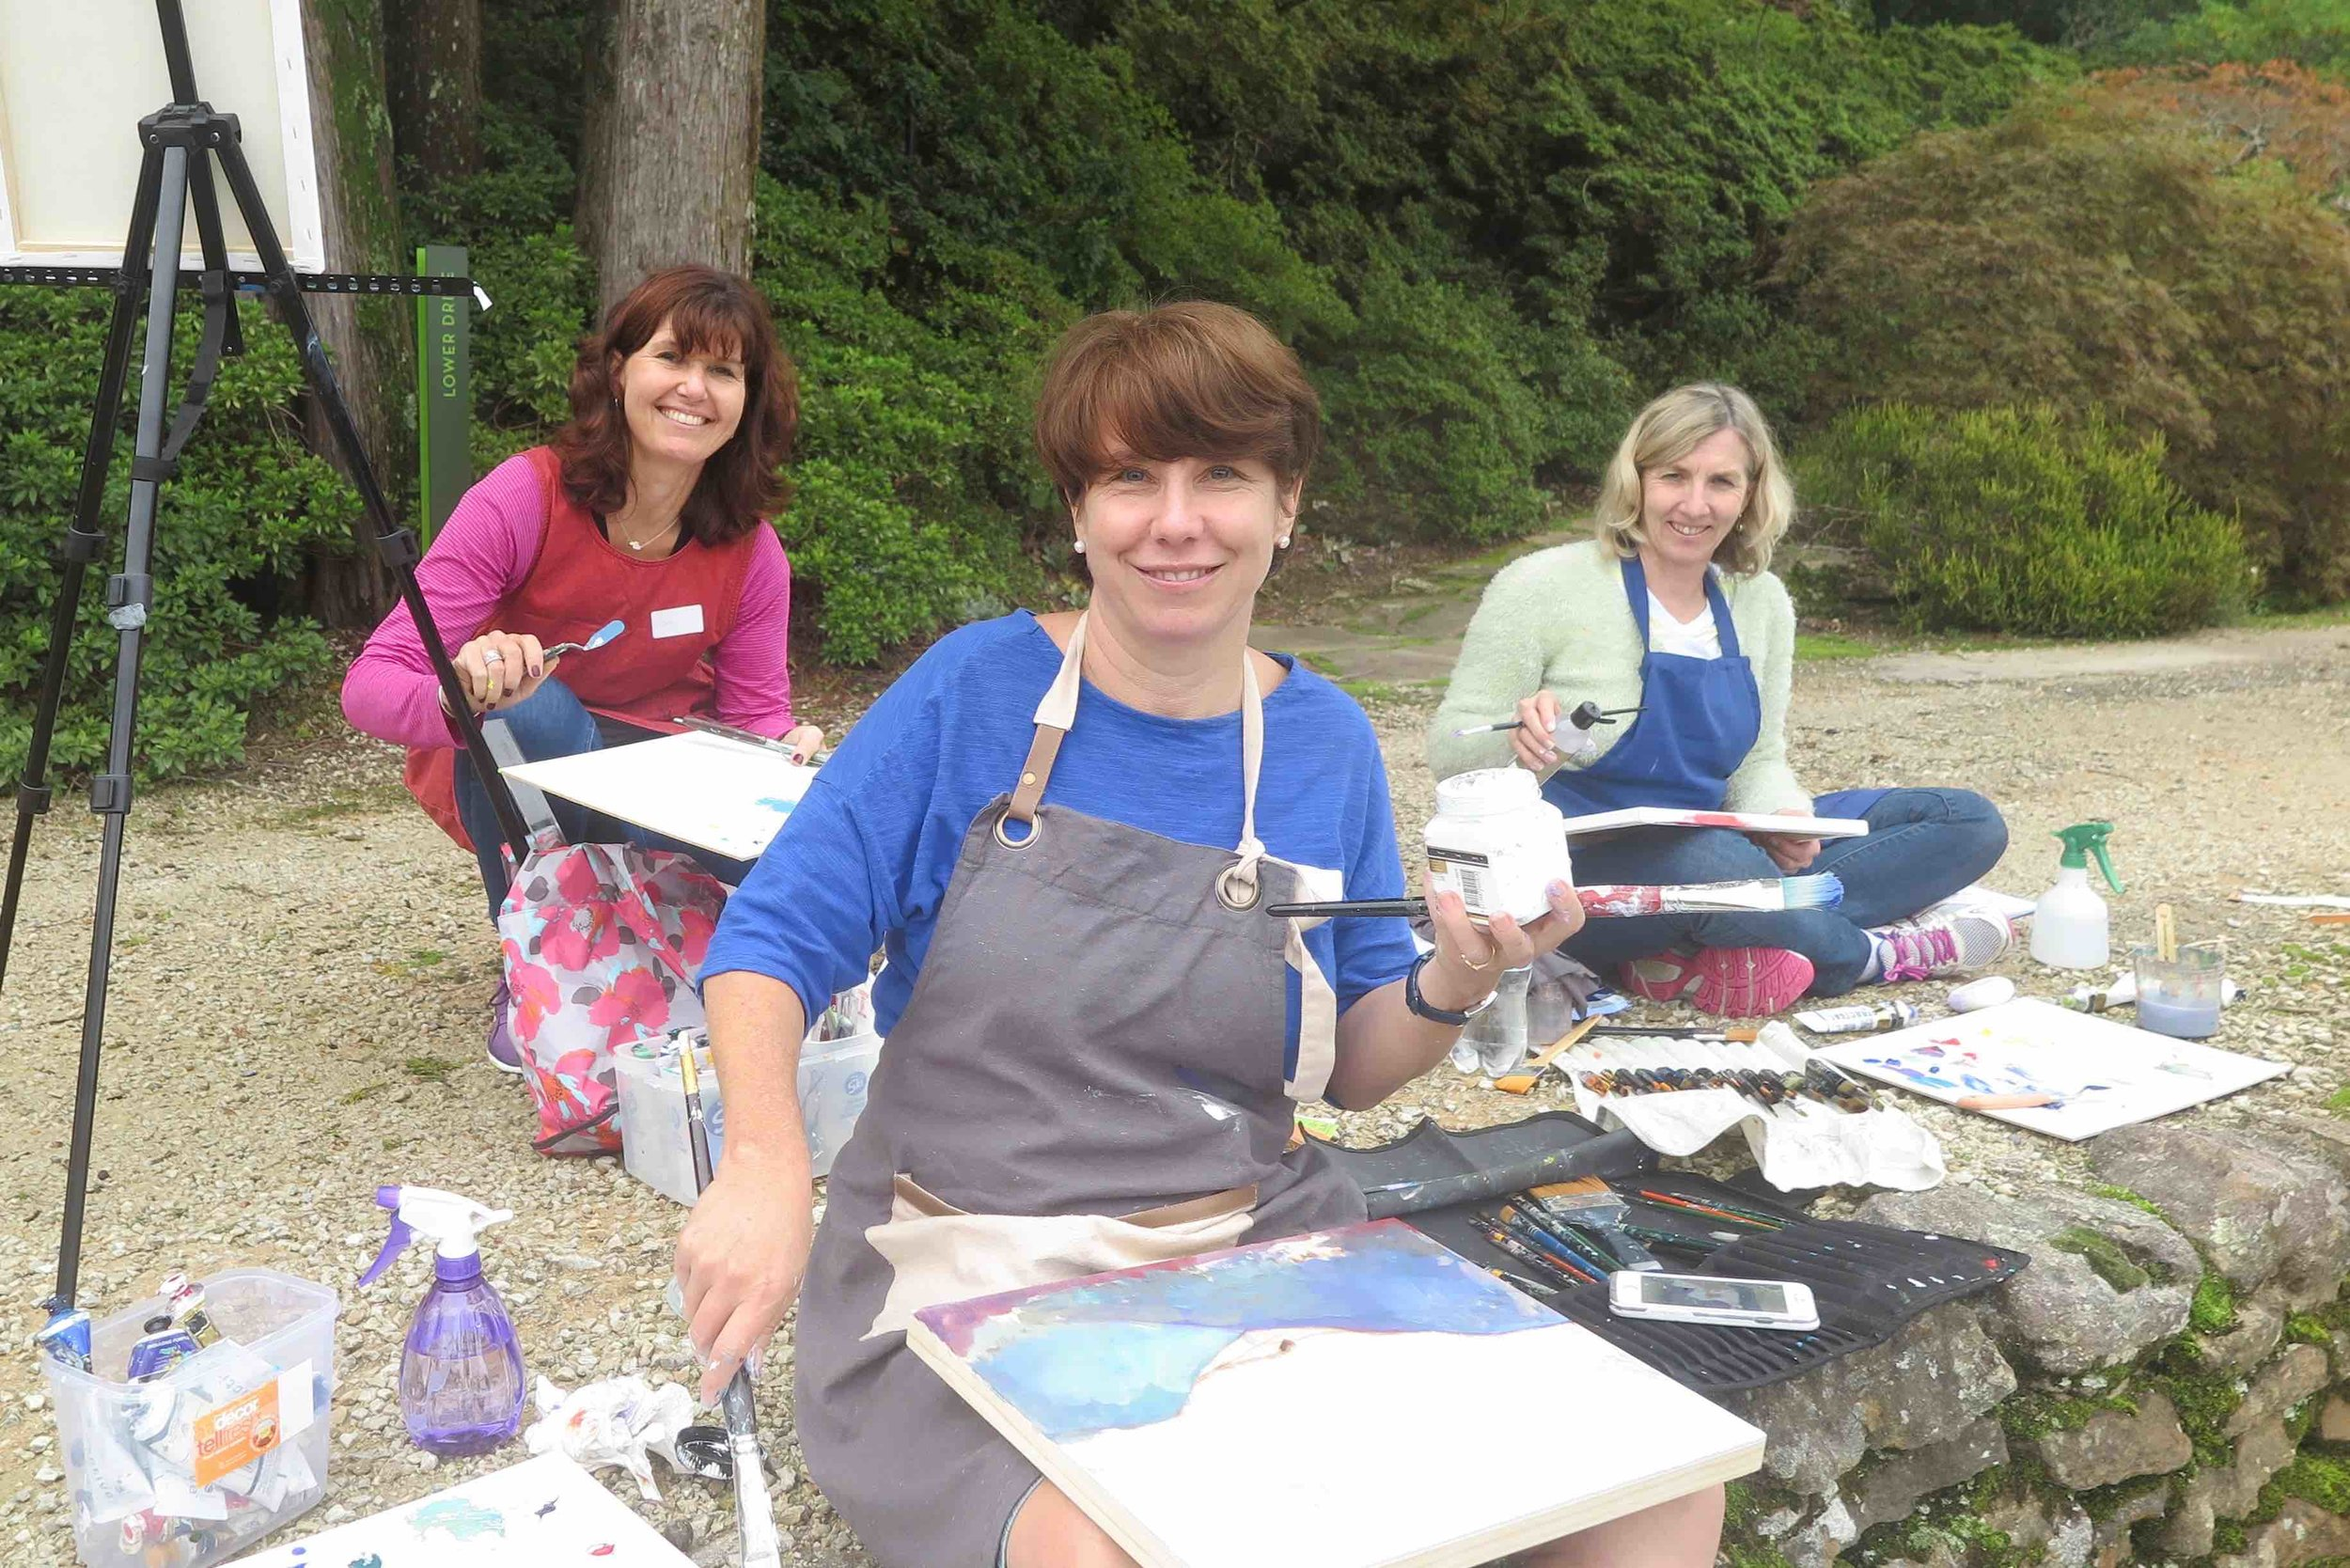 small Sue, Bron and Fiona form Sydney's North Shore, loved the Mountains air and perspectives.jpg